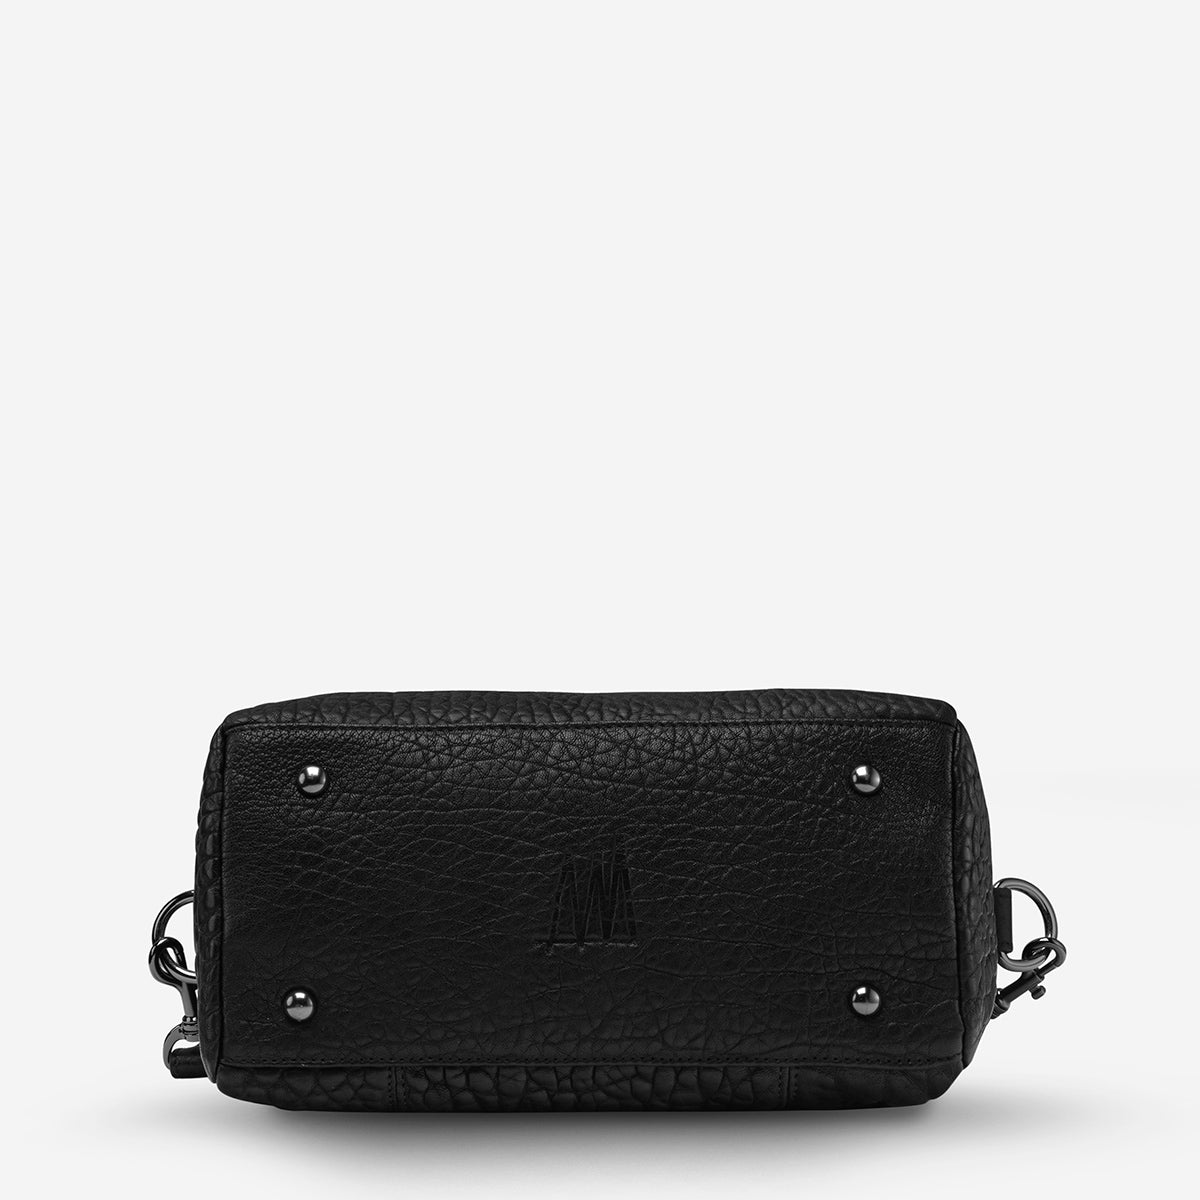 Status Anxiety Last Mountains Women's Leather Handbag - Black Bubble